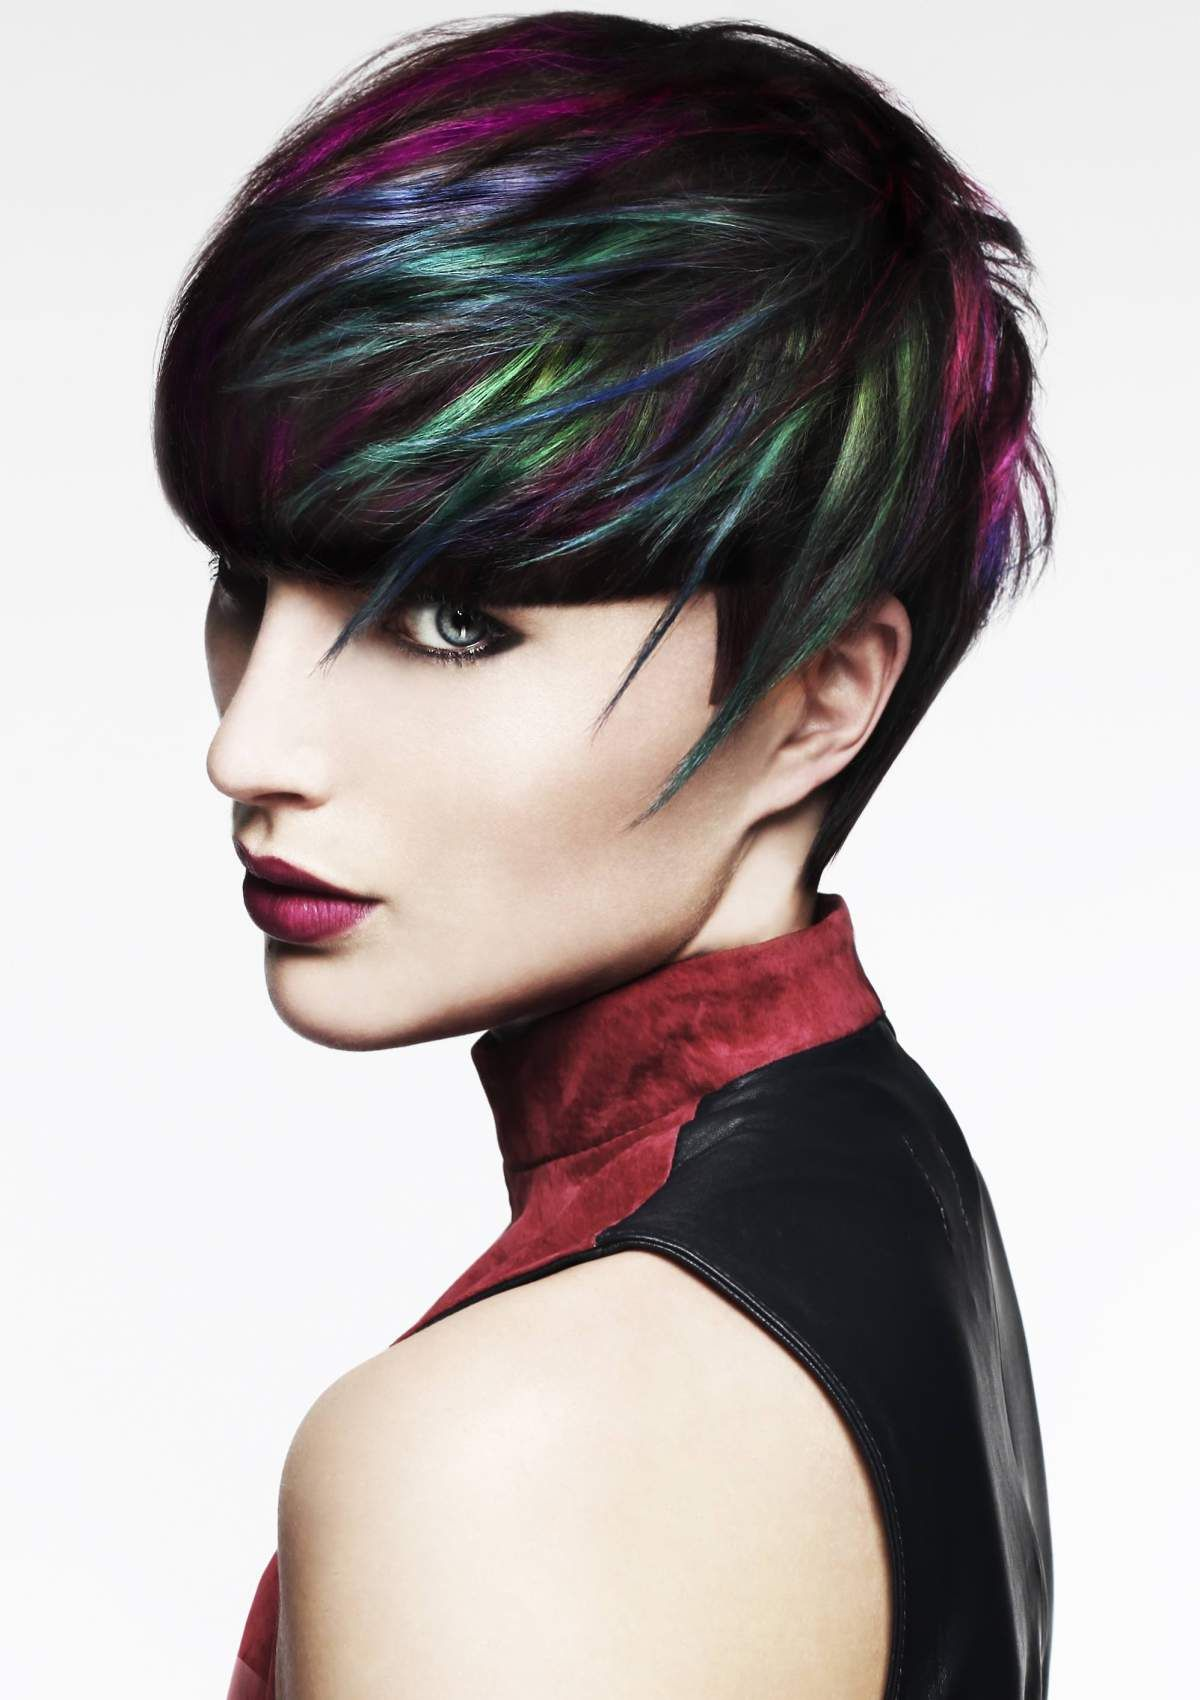 Creative Colorist Finalists All About Hair Pinterest - Creative hairstyle color